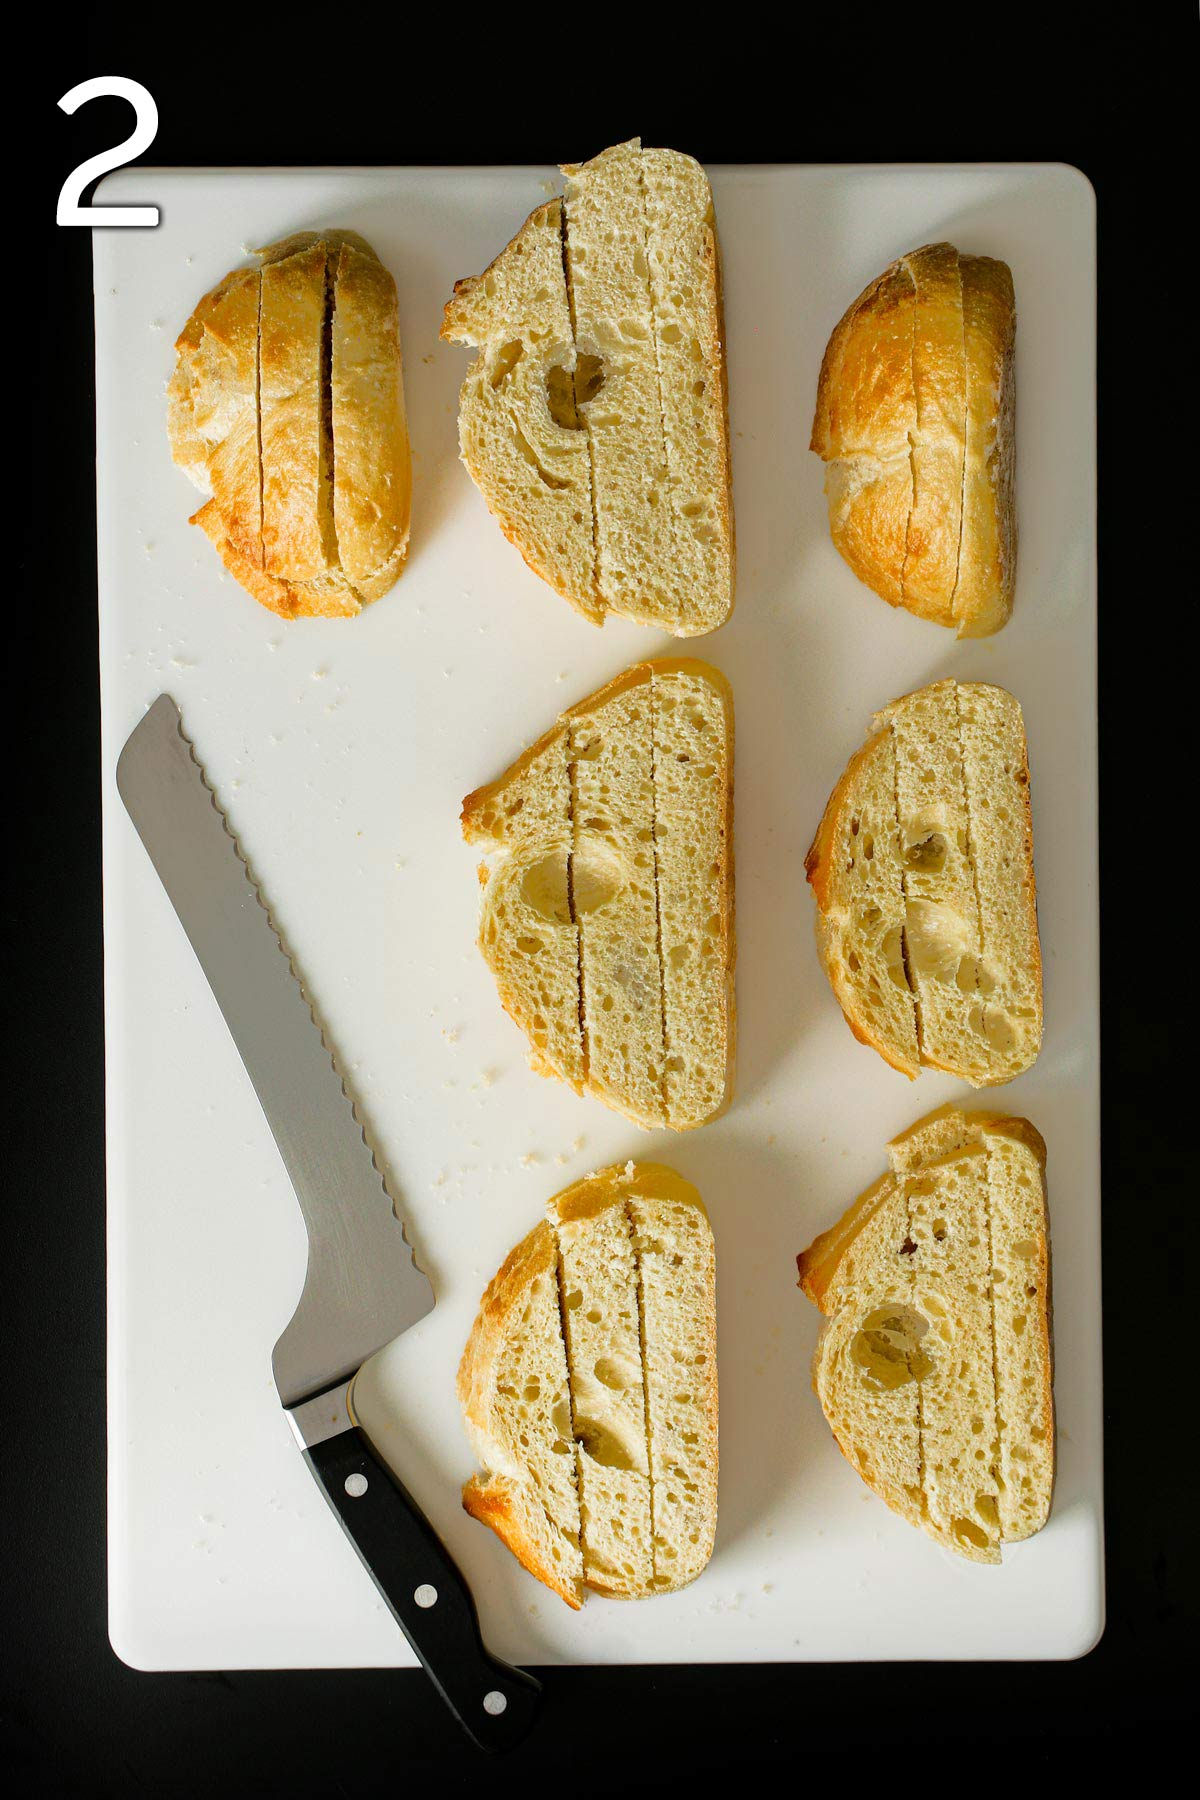 stacked bread slices cut into strips on white board next to bread knife.